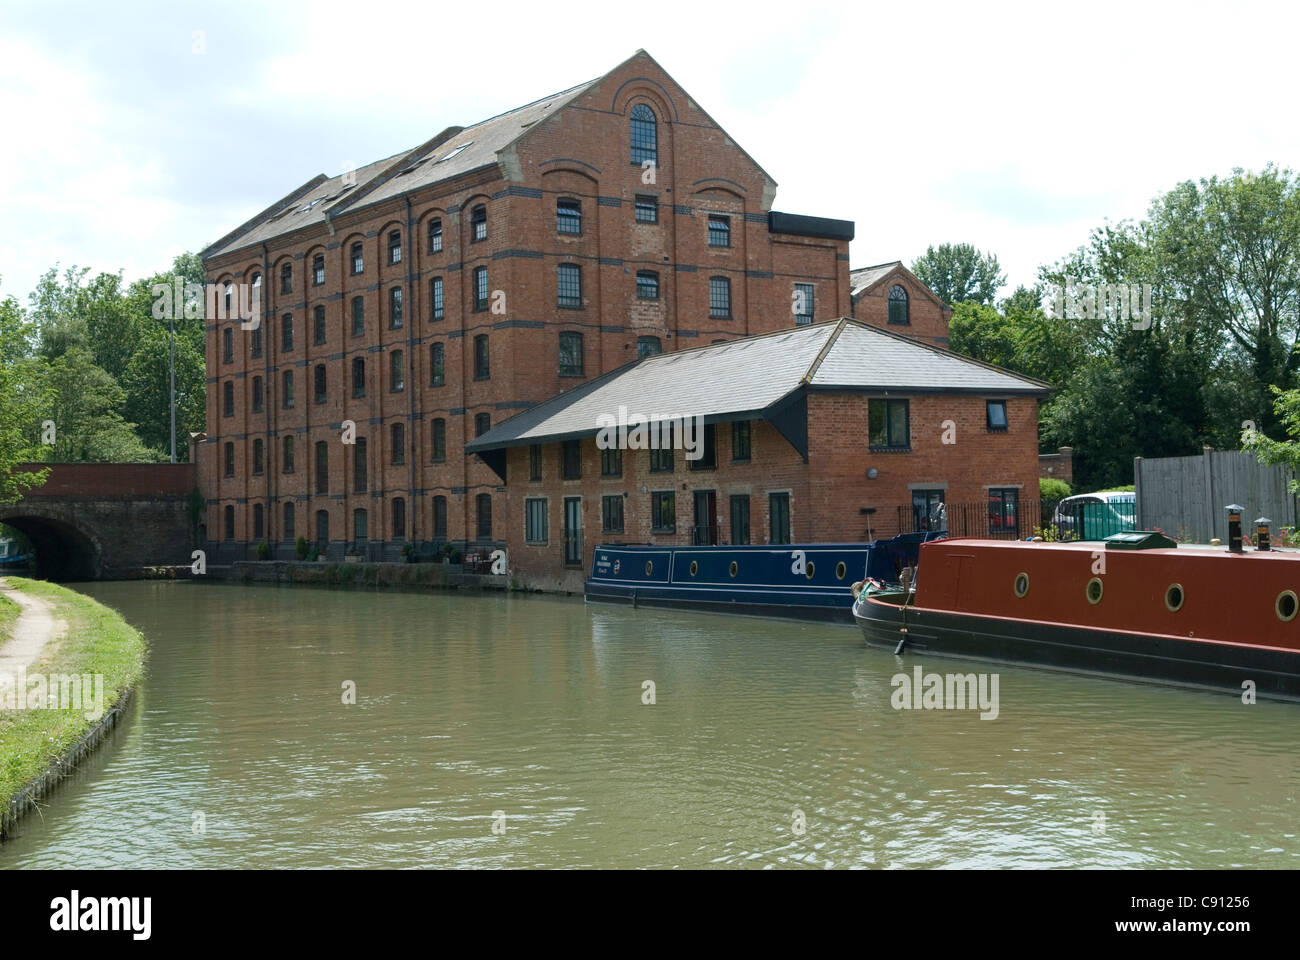 At Blisworth Mill on the Grand Union Canal there are historic buildings from the era when the canals provided the - Stock Image